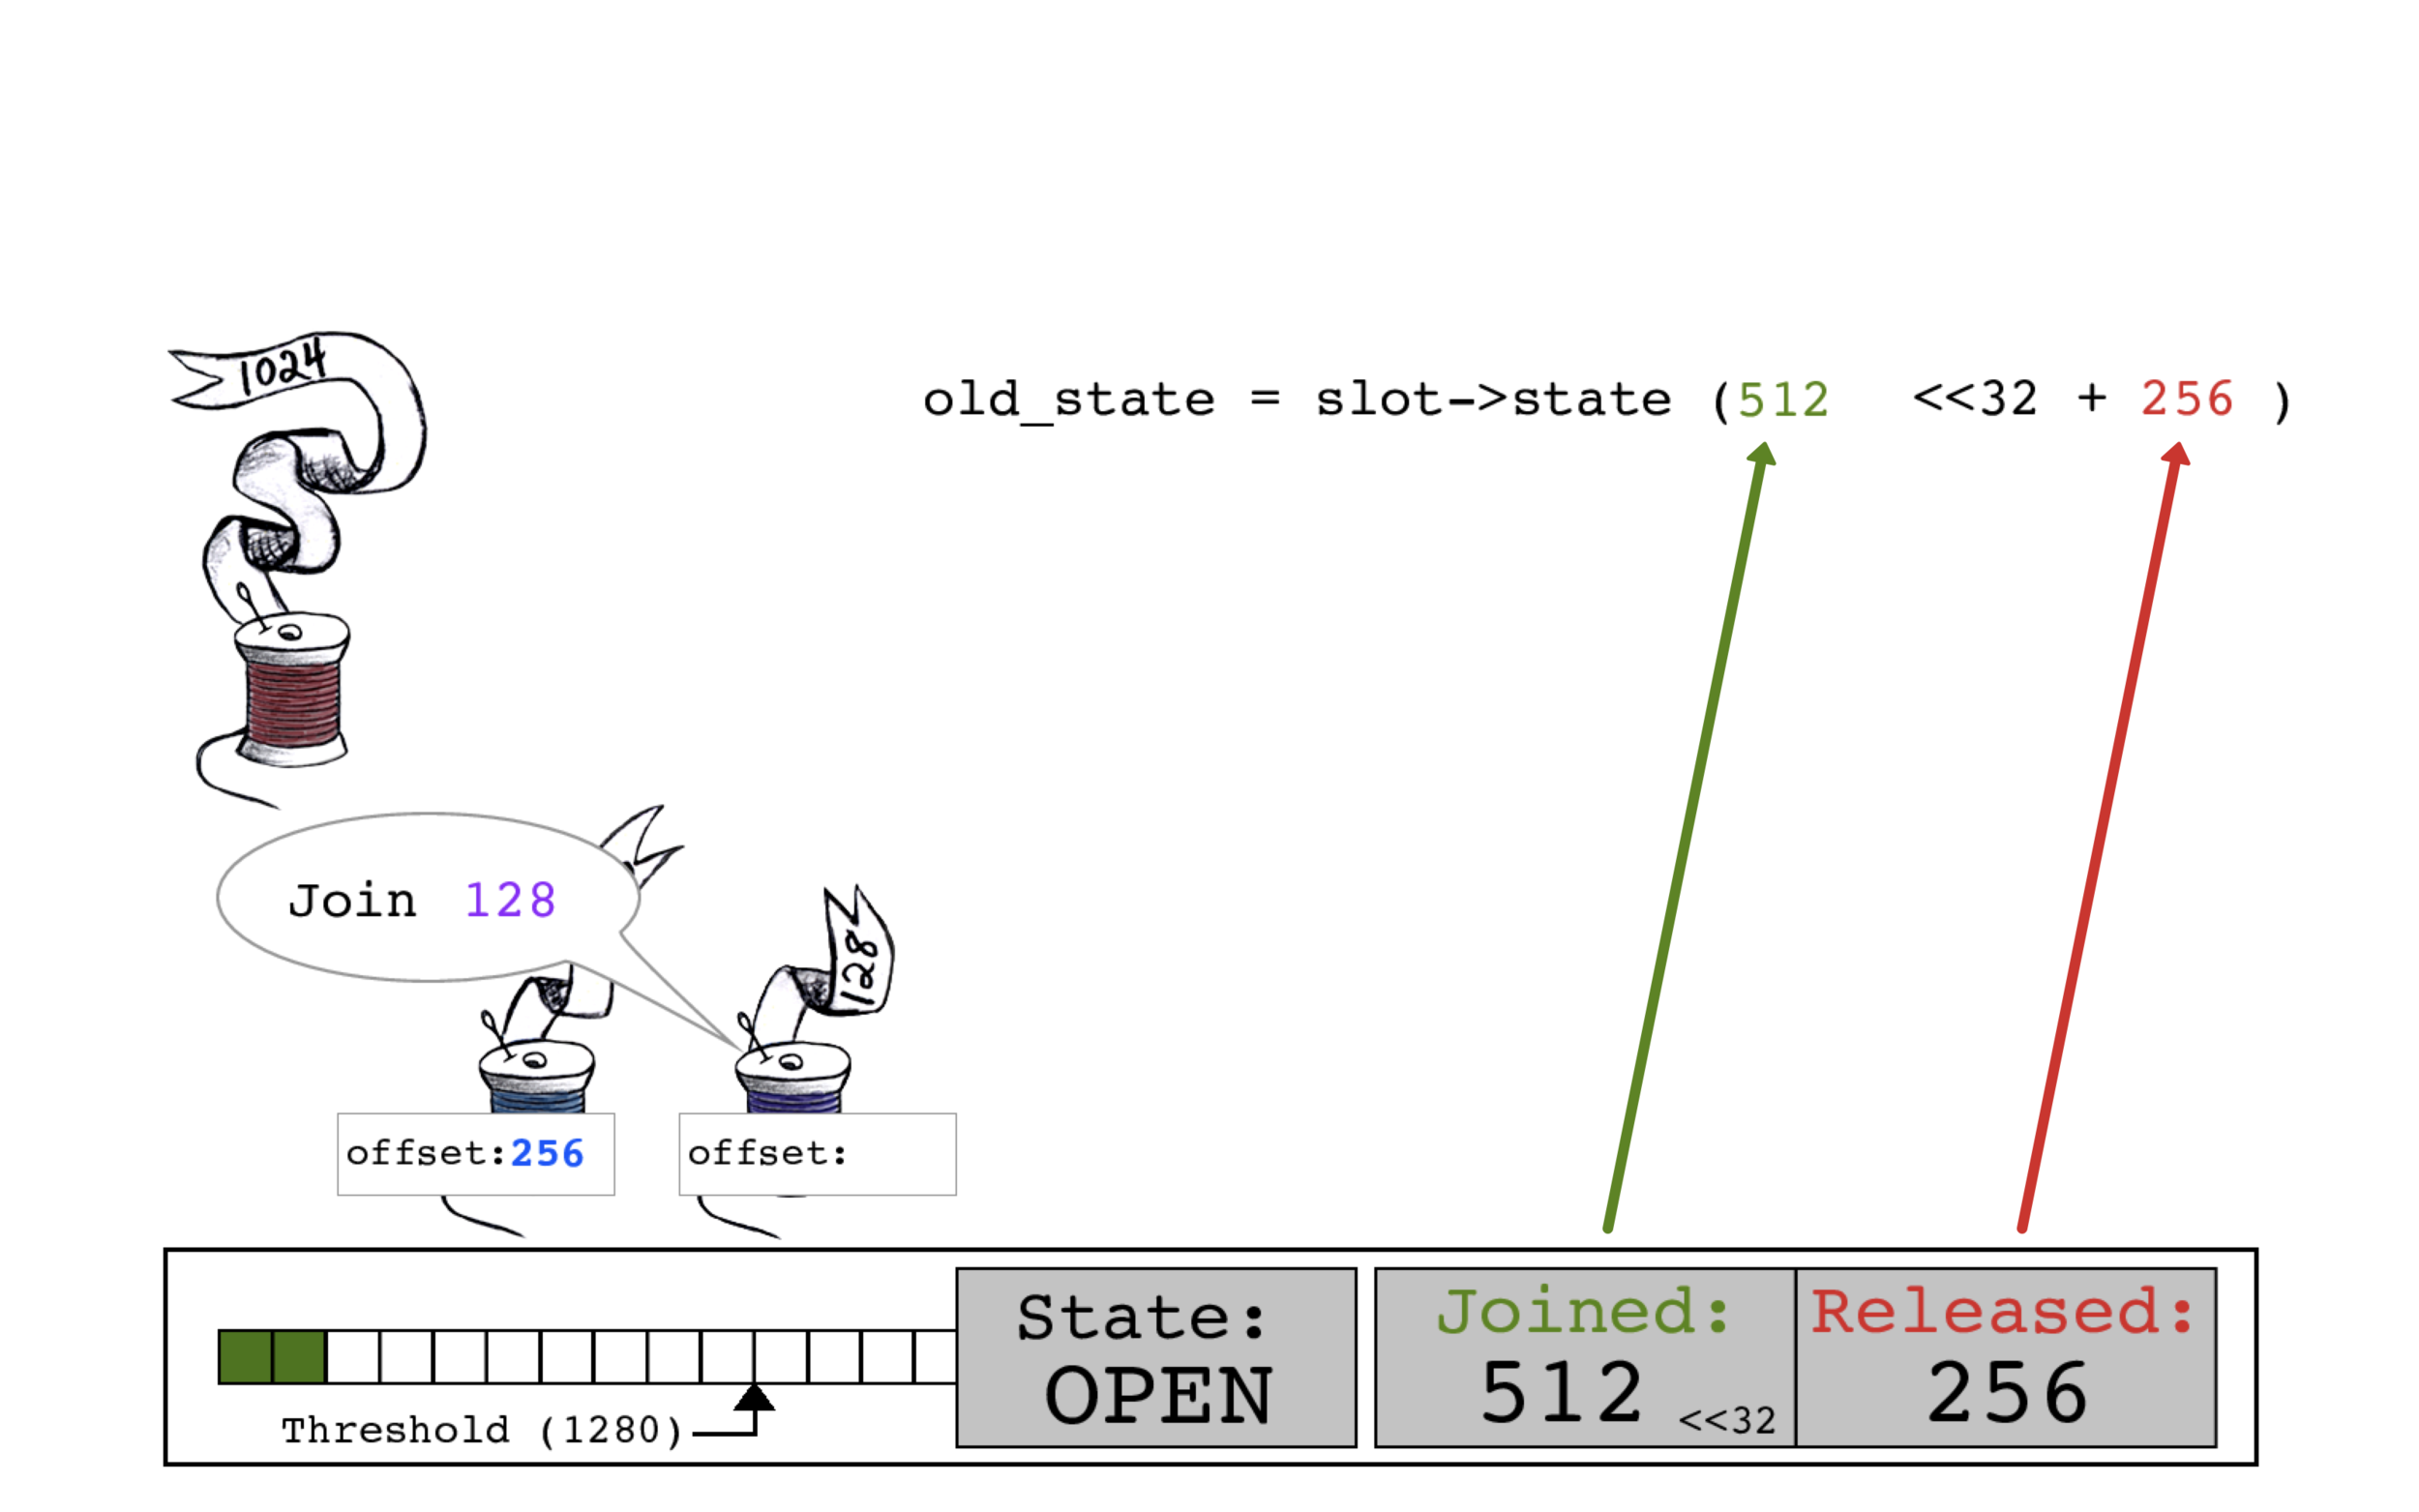 Purple thread reads the current slot->state, which for the first time in this sequence has a diffrent count for JOINED bits (512) and RELEASED bits (256) at the beginning of a join operation.